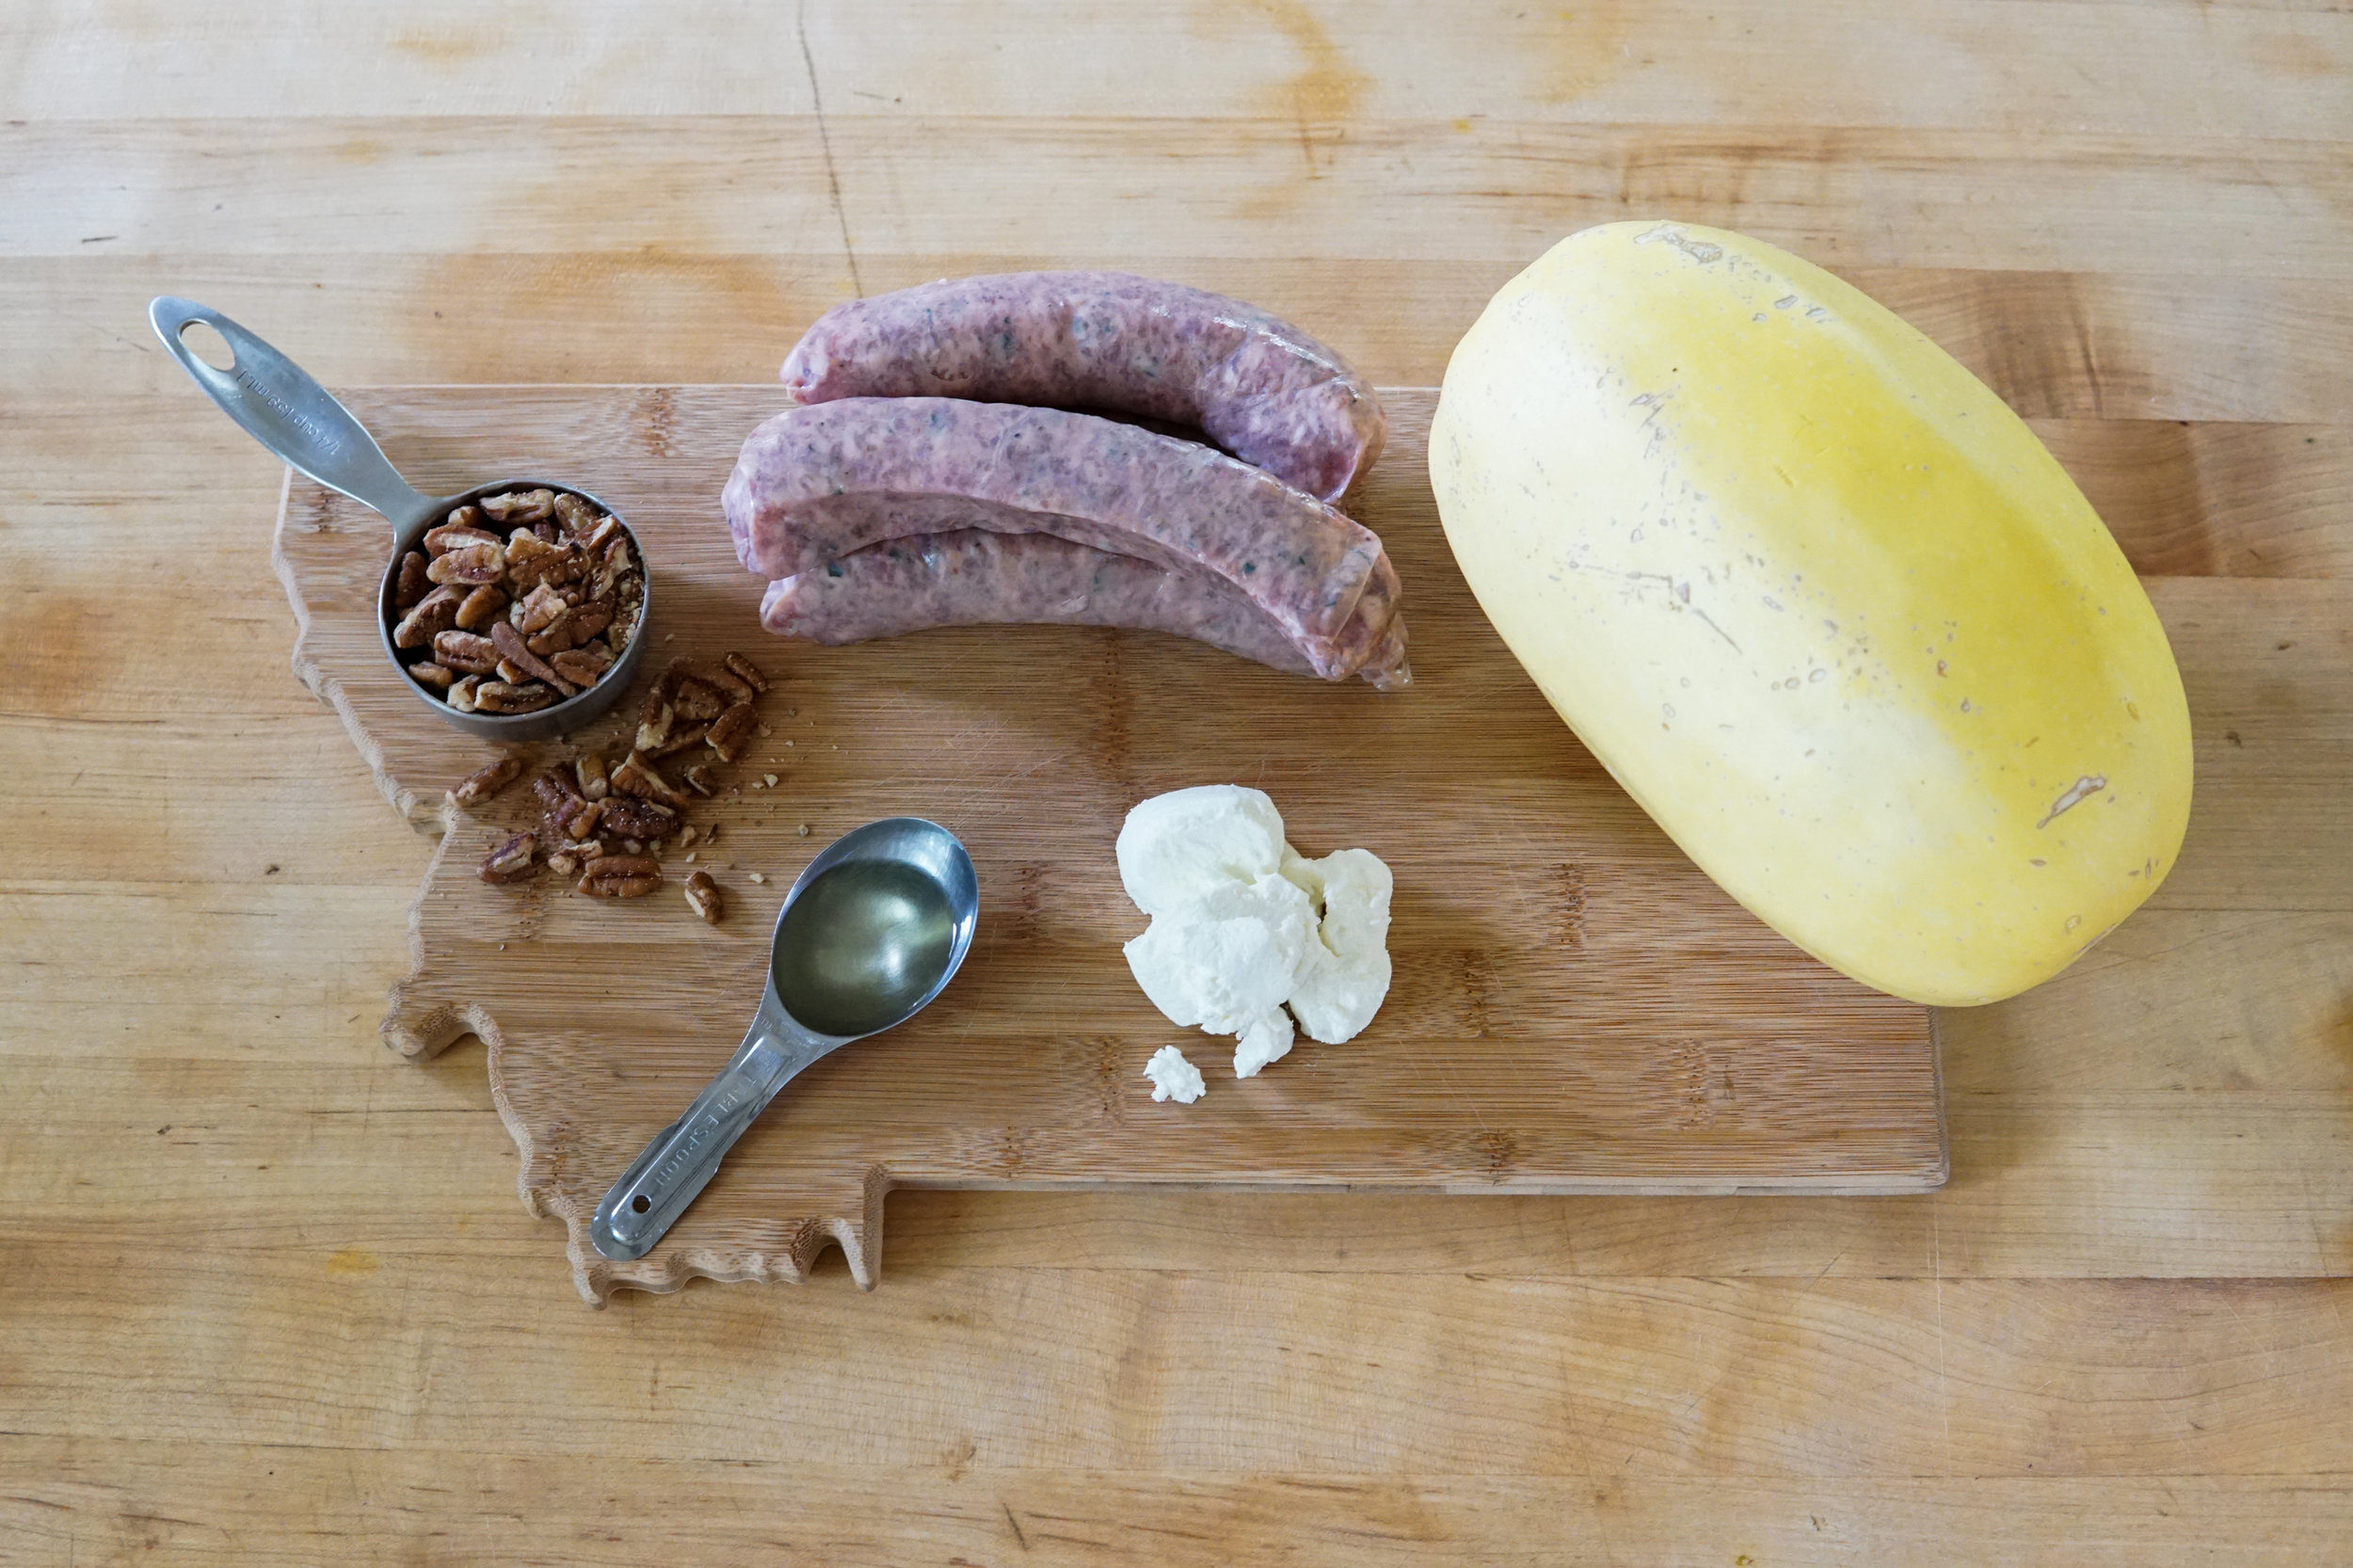 Squash sausage paleo food climbing ingredients.jpg